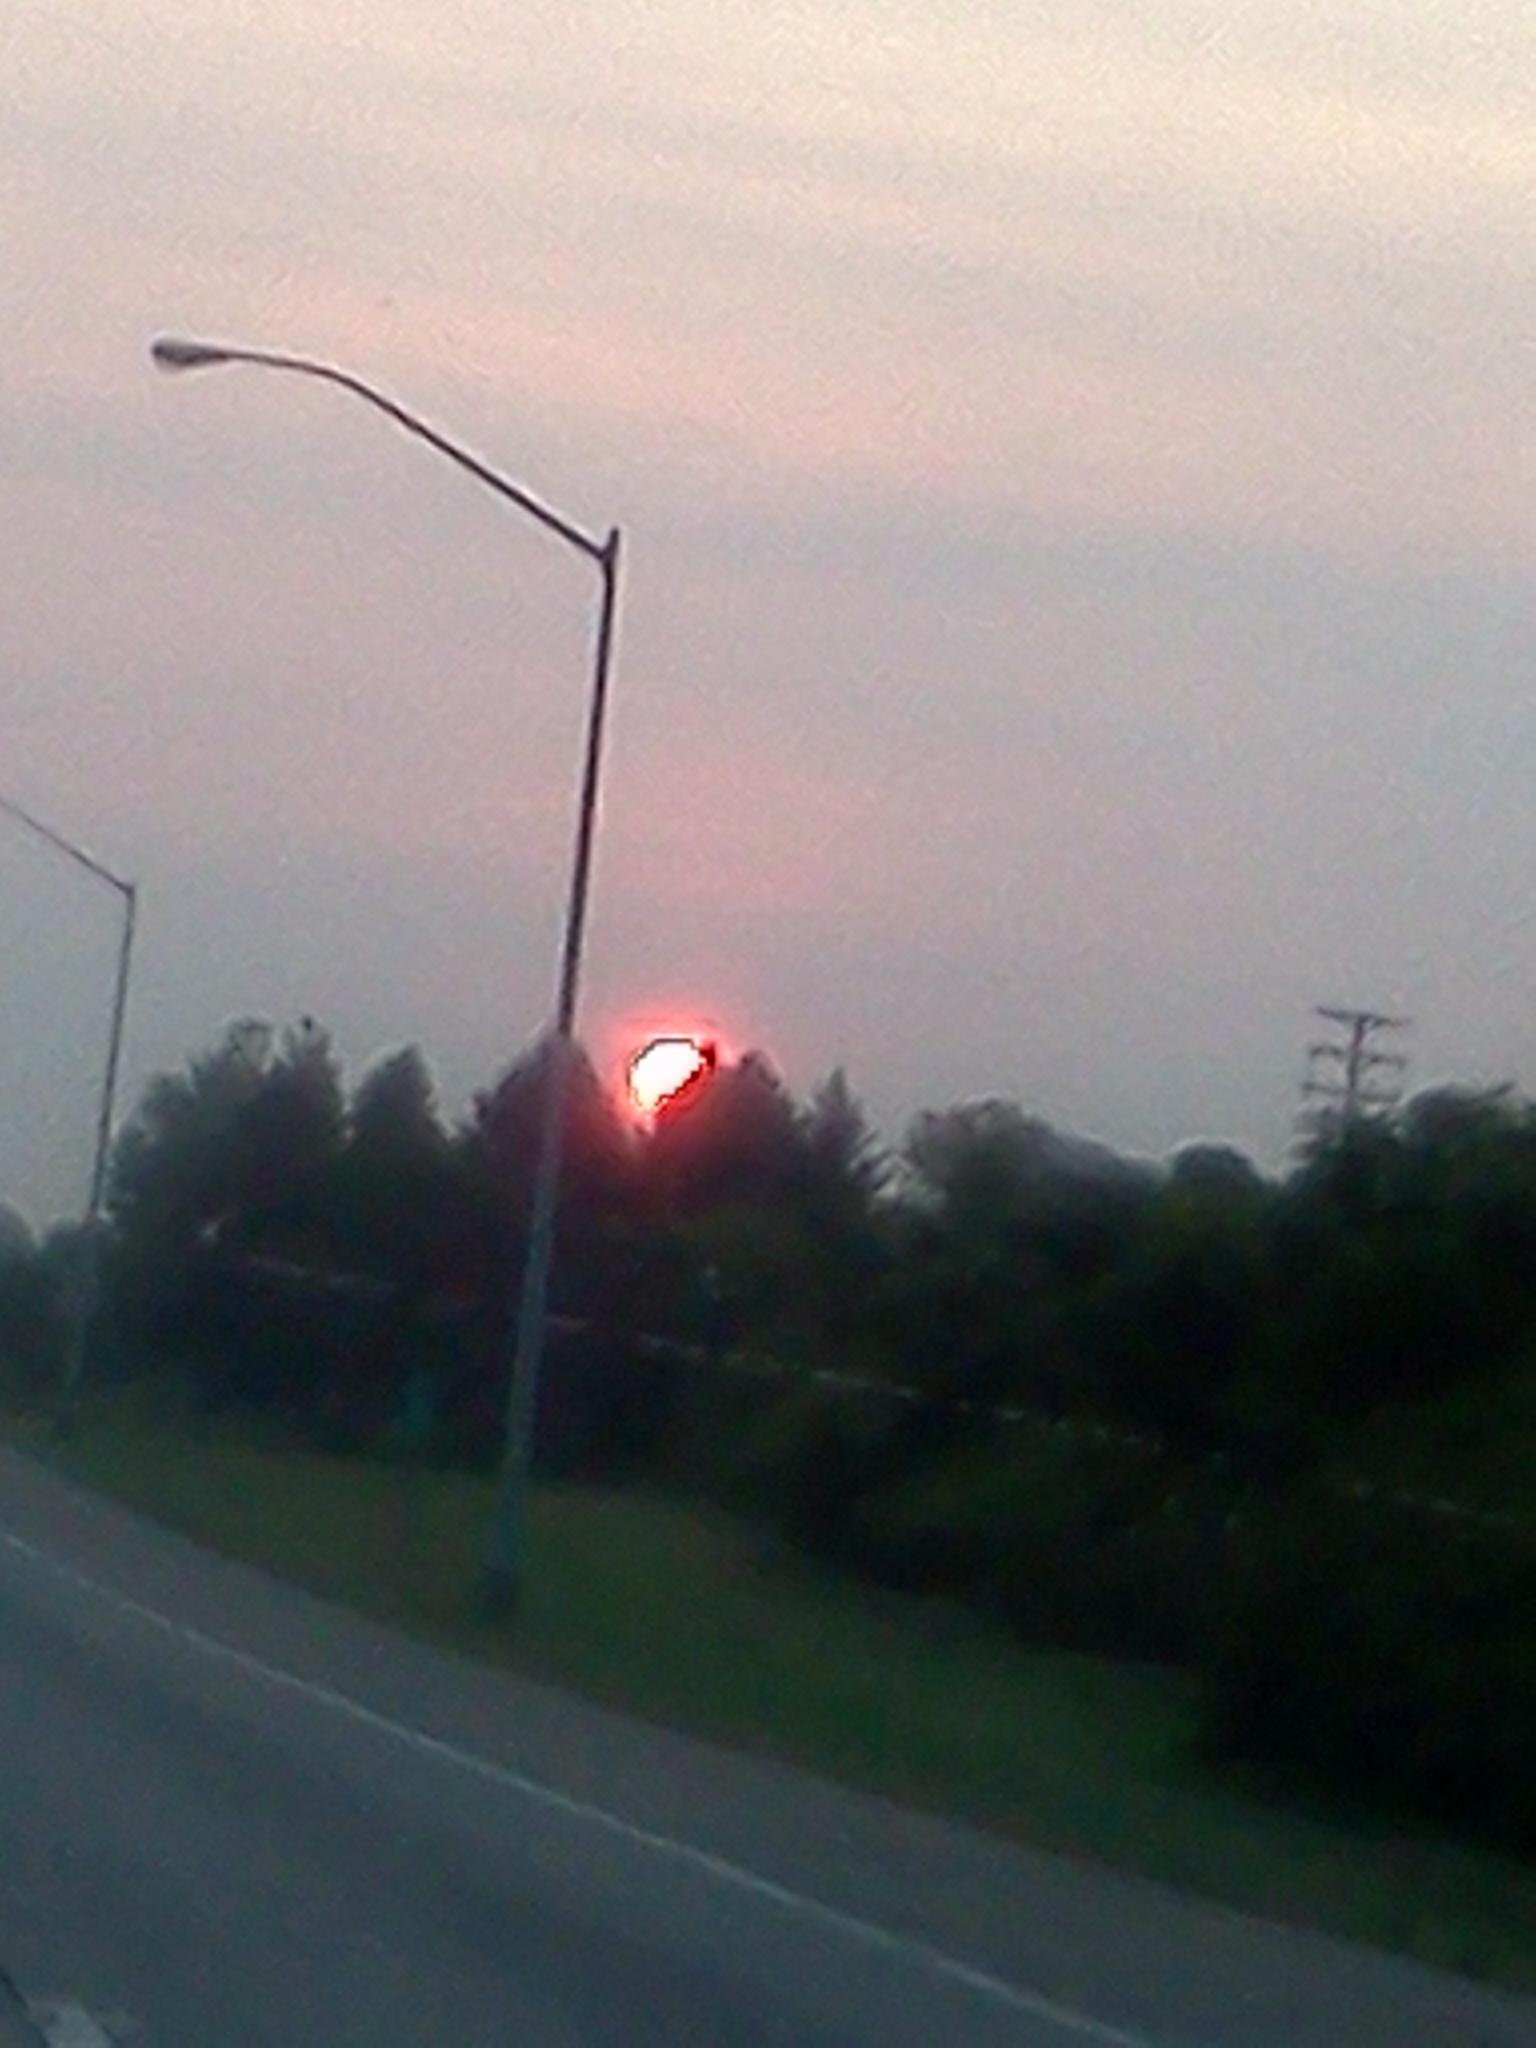 RT @Keichlynnnnx3: Why is the sun red tho?-.- http://t.co/twpEudsR